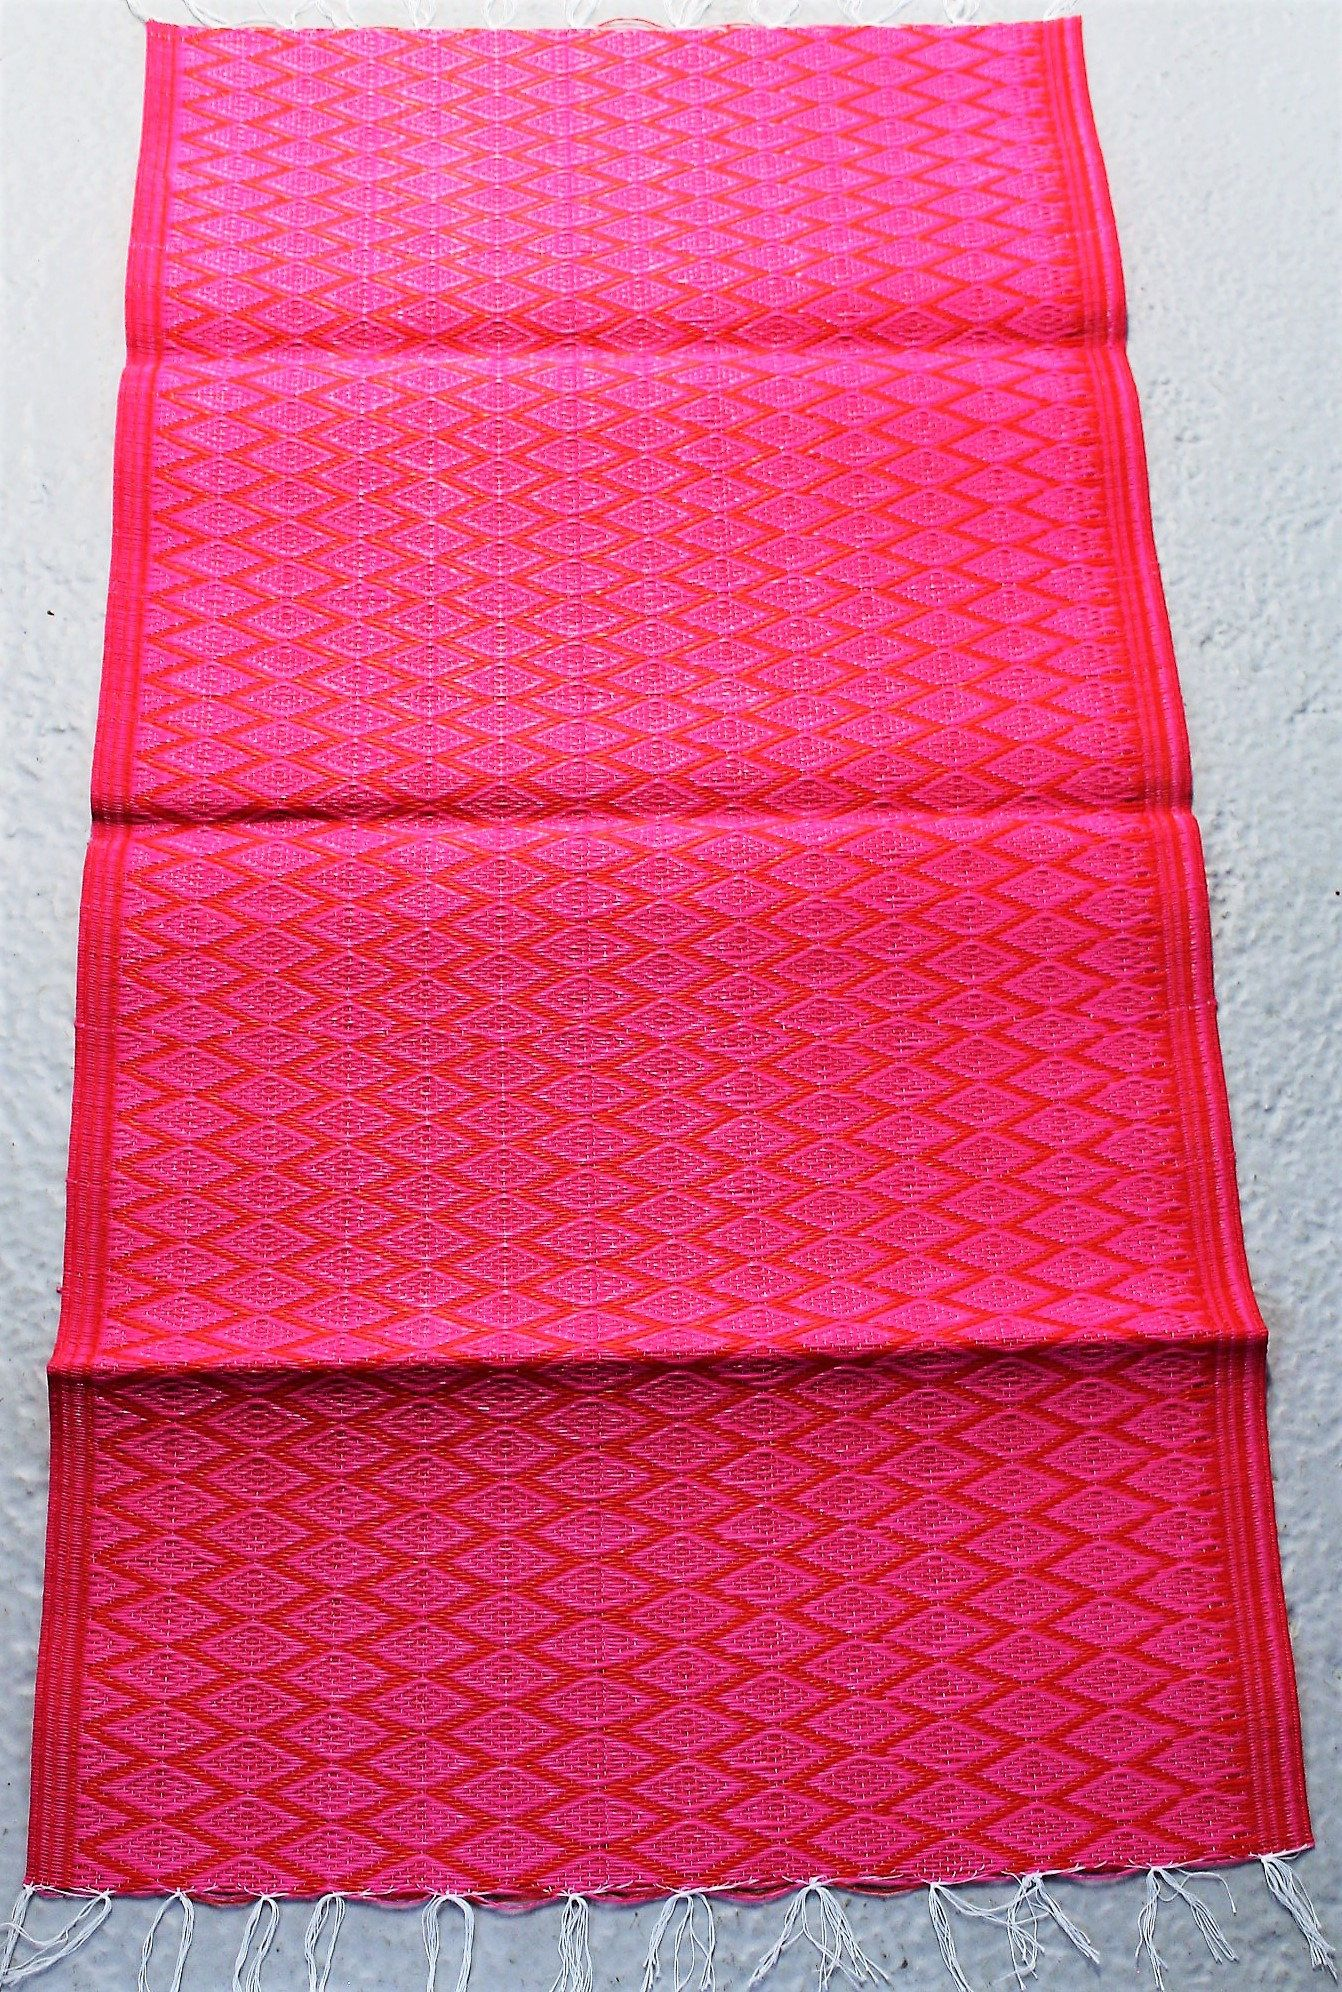 Red Pink Recycled Plastic Mat Small Floor Rug Bathroom